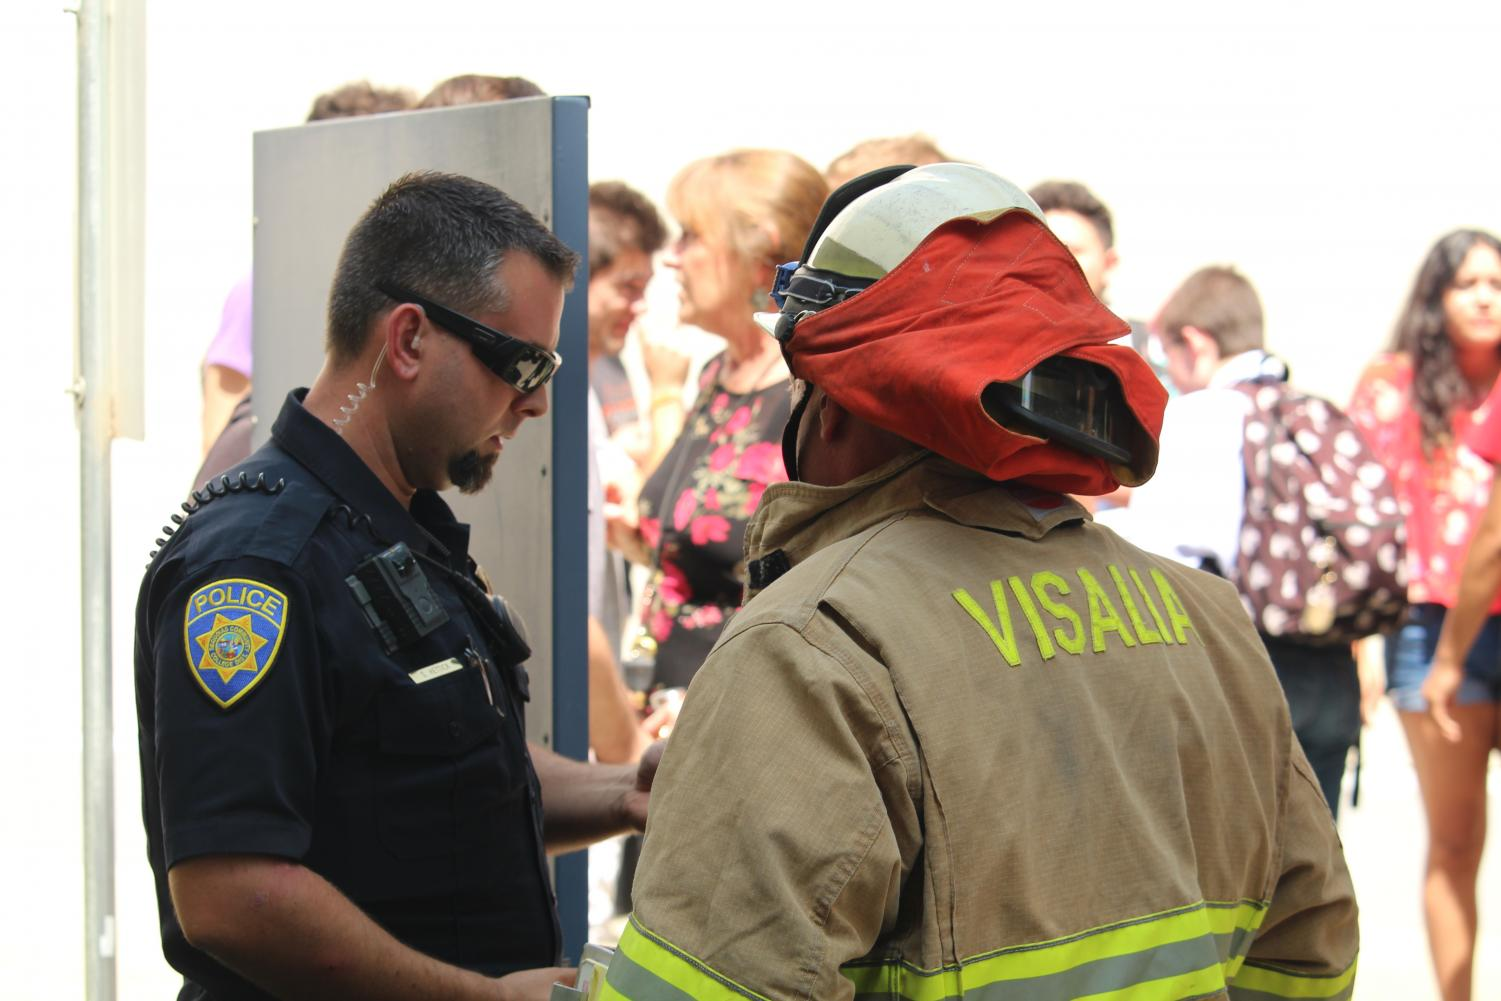 COS district police office Duke Hettick meets with the Visalia Fire Department outside of the Sierra building.